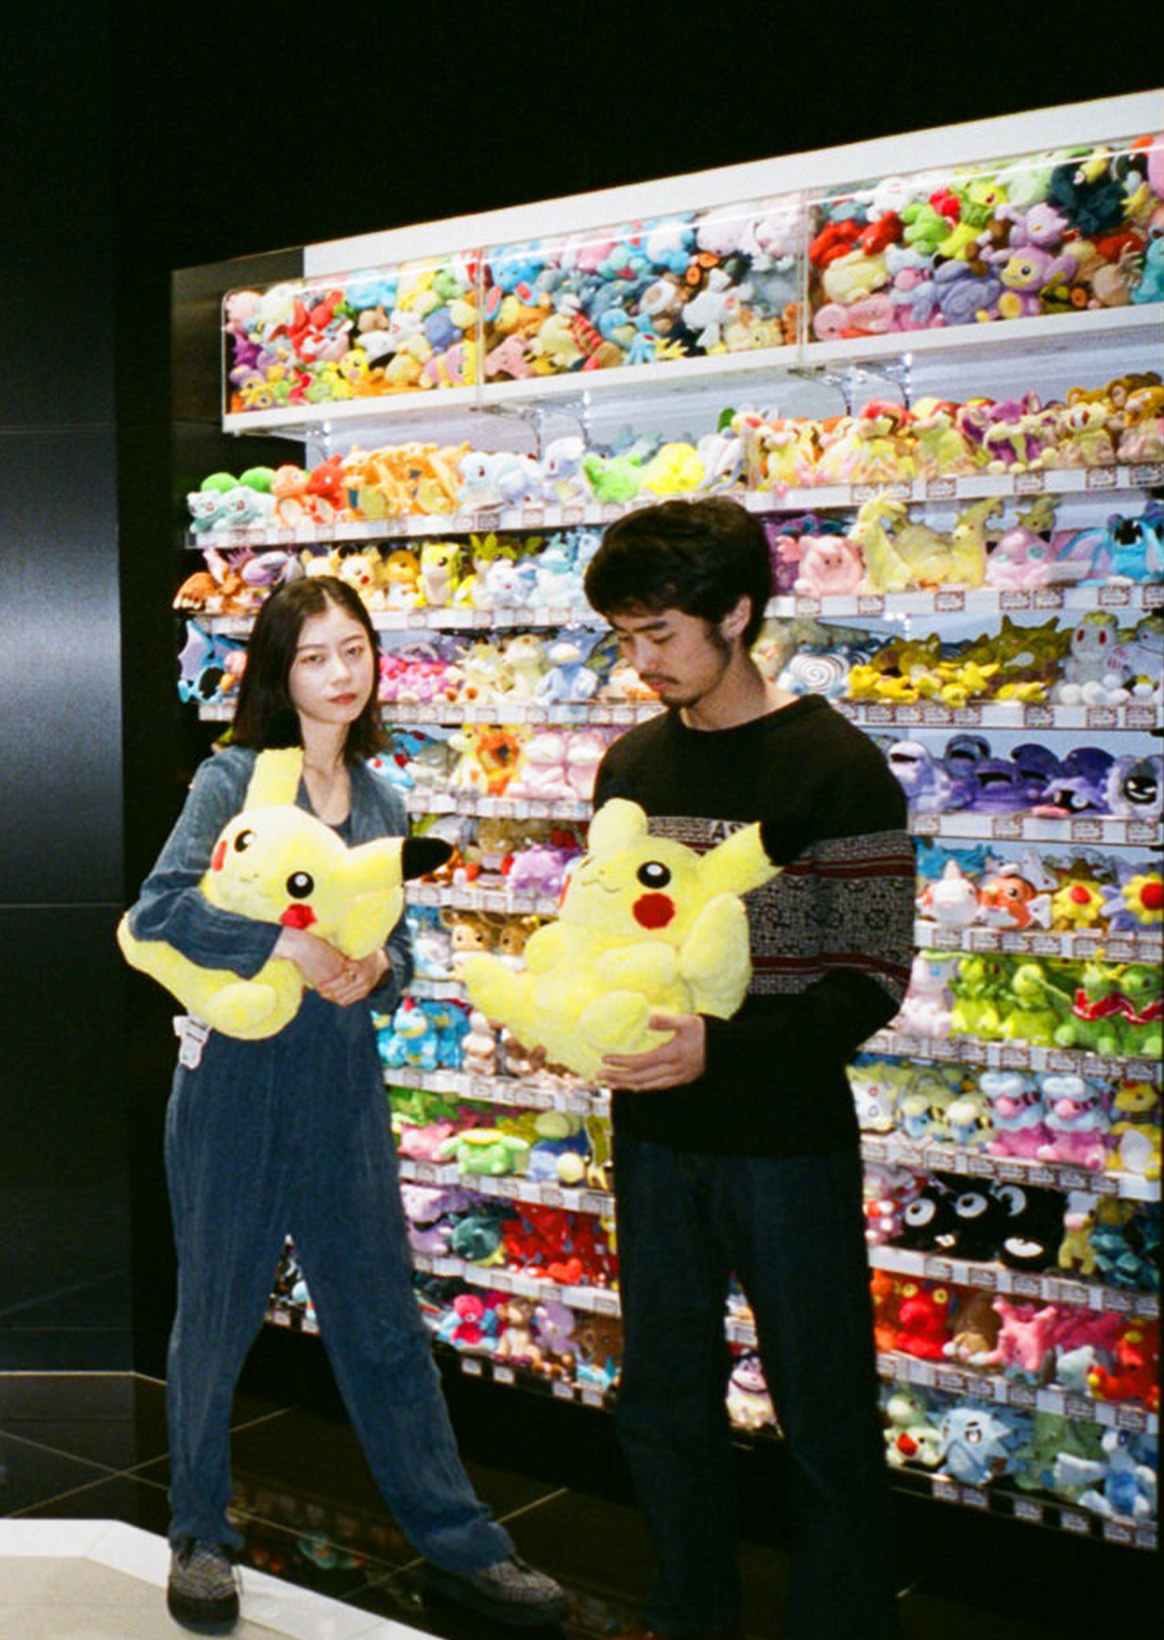 SUMIRE & HIMI SATO X Pokémon Center SHIBUYA /iki/M.I.U. Nº2 | We cross culture and bring about new sense of values.